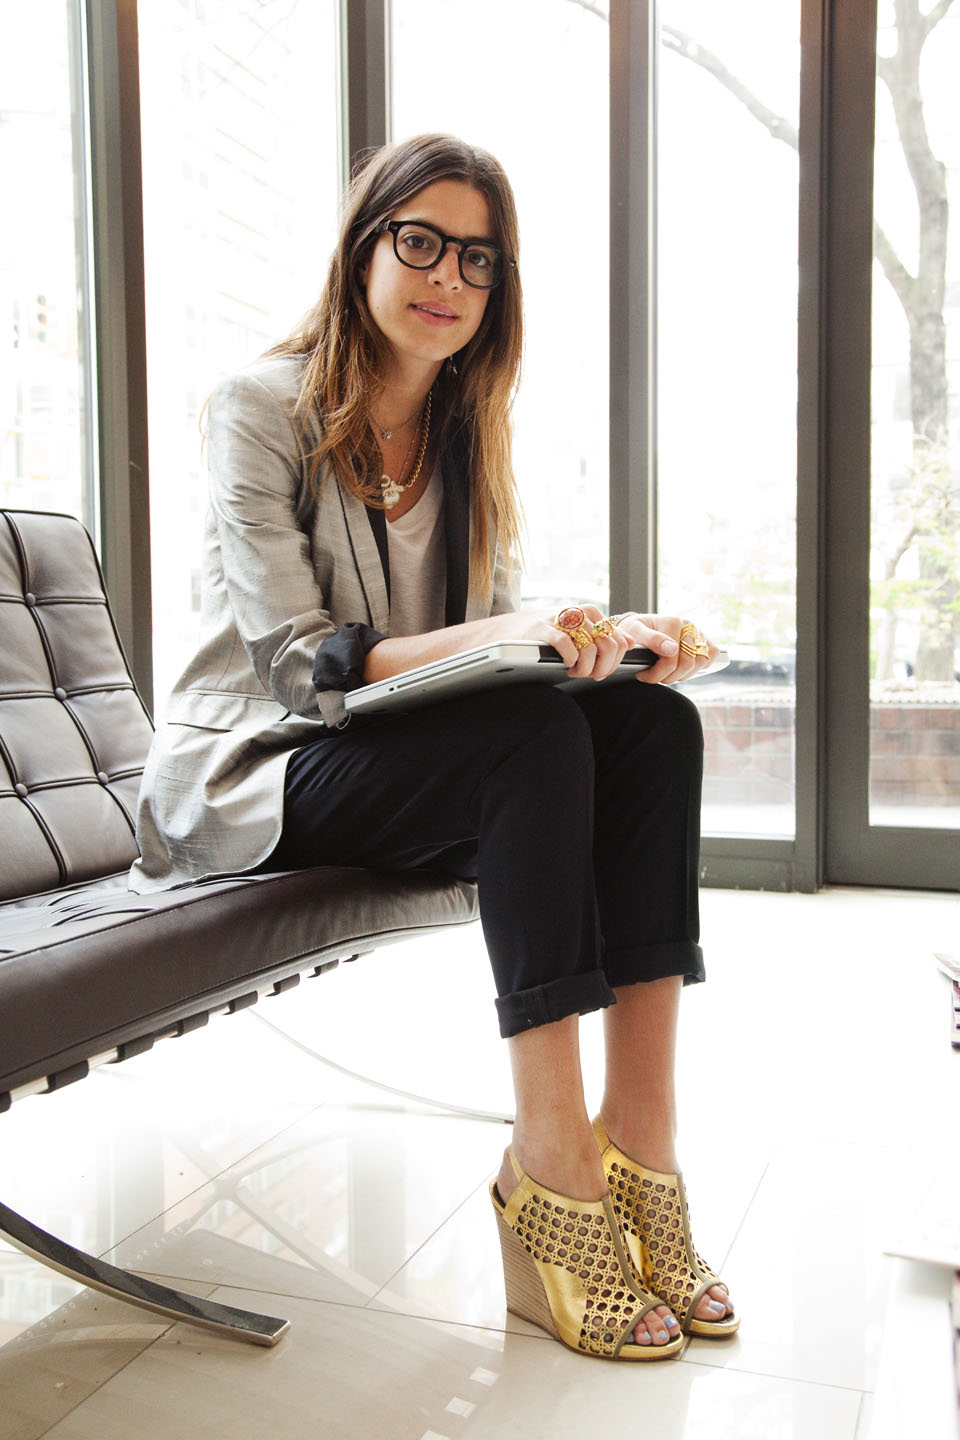 ldm imagesize:960x1440 @ Thematic Repelling: Job Interview Chic